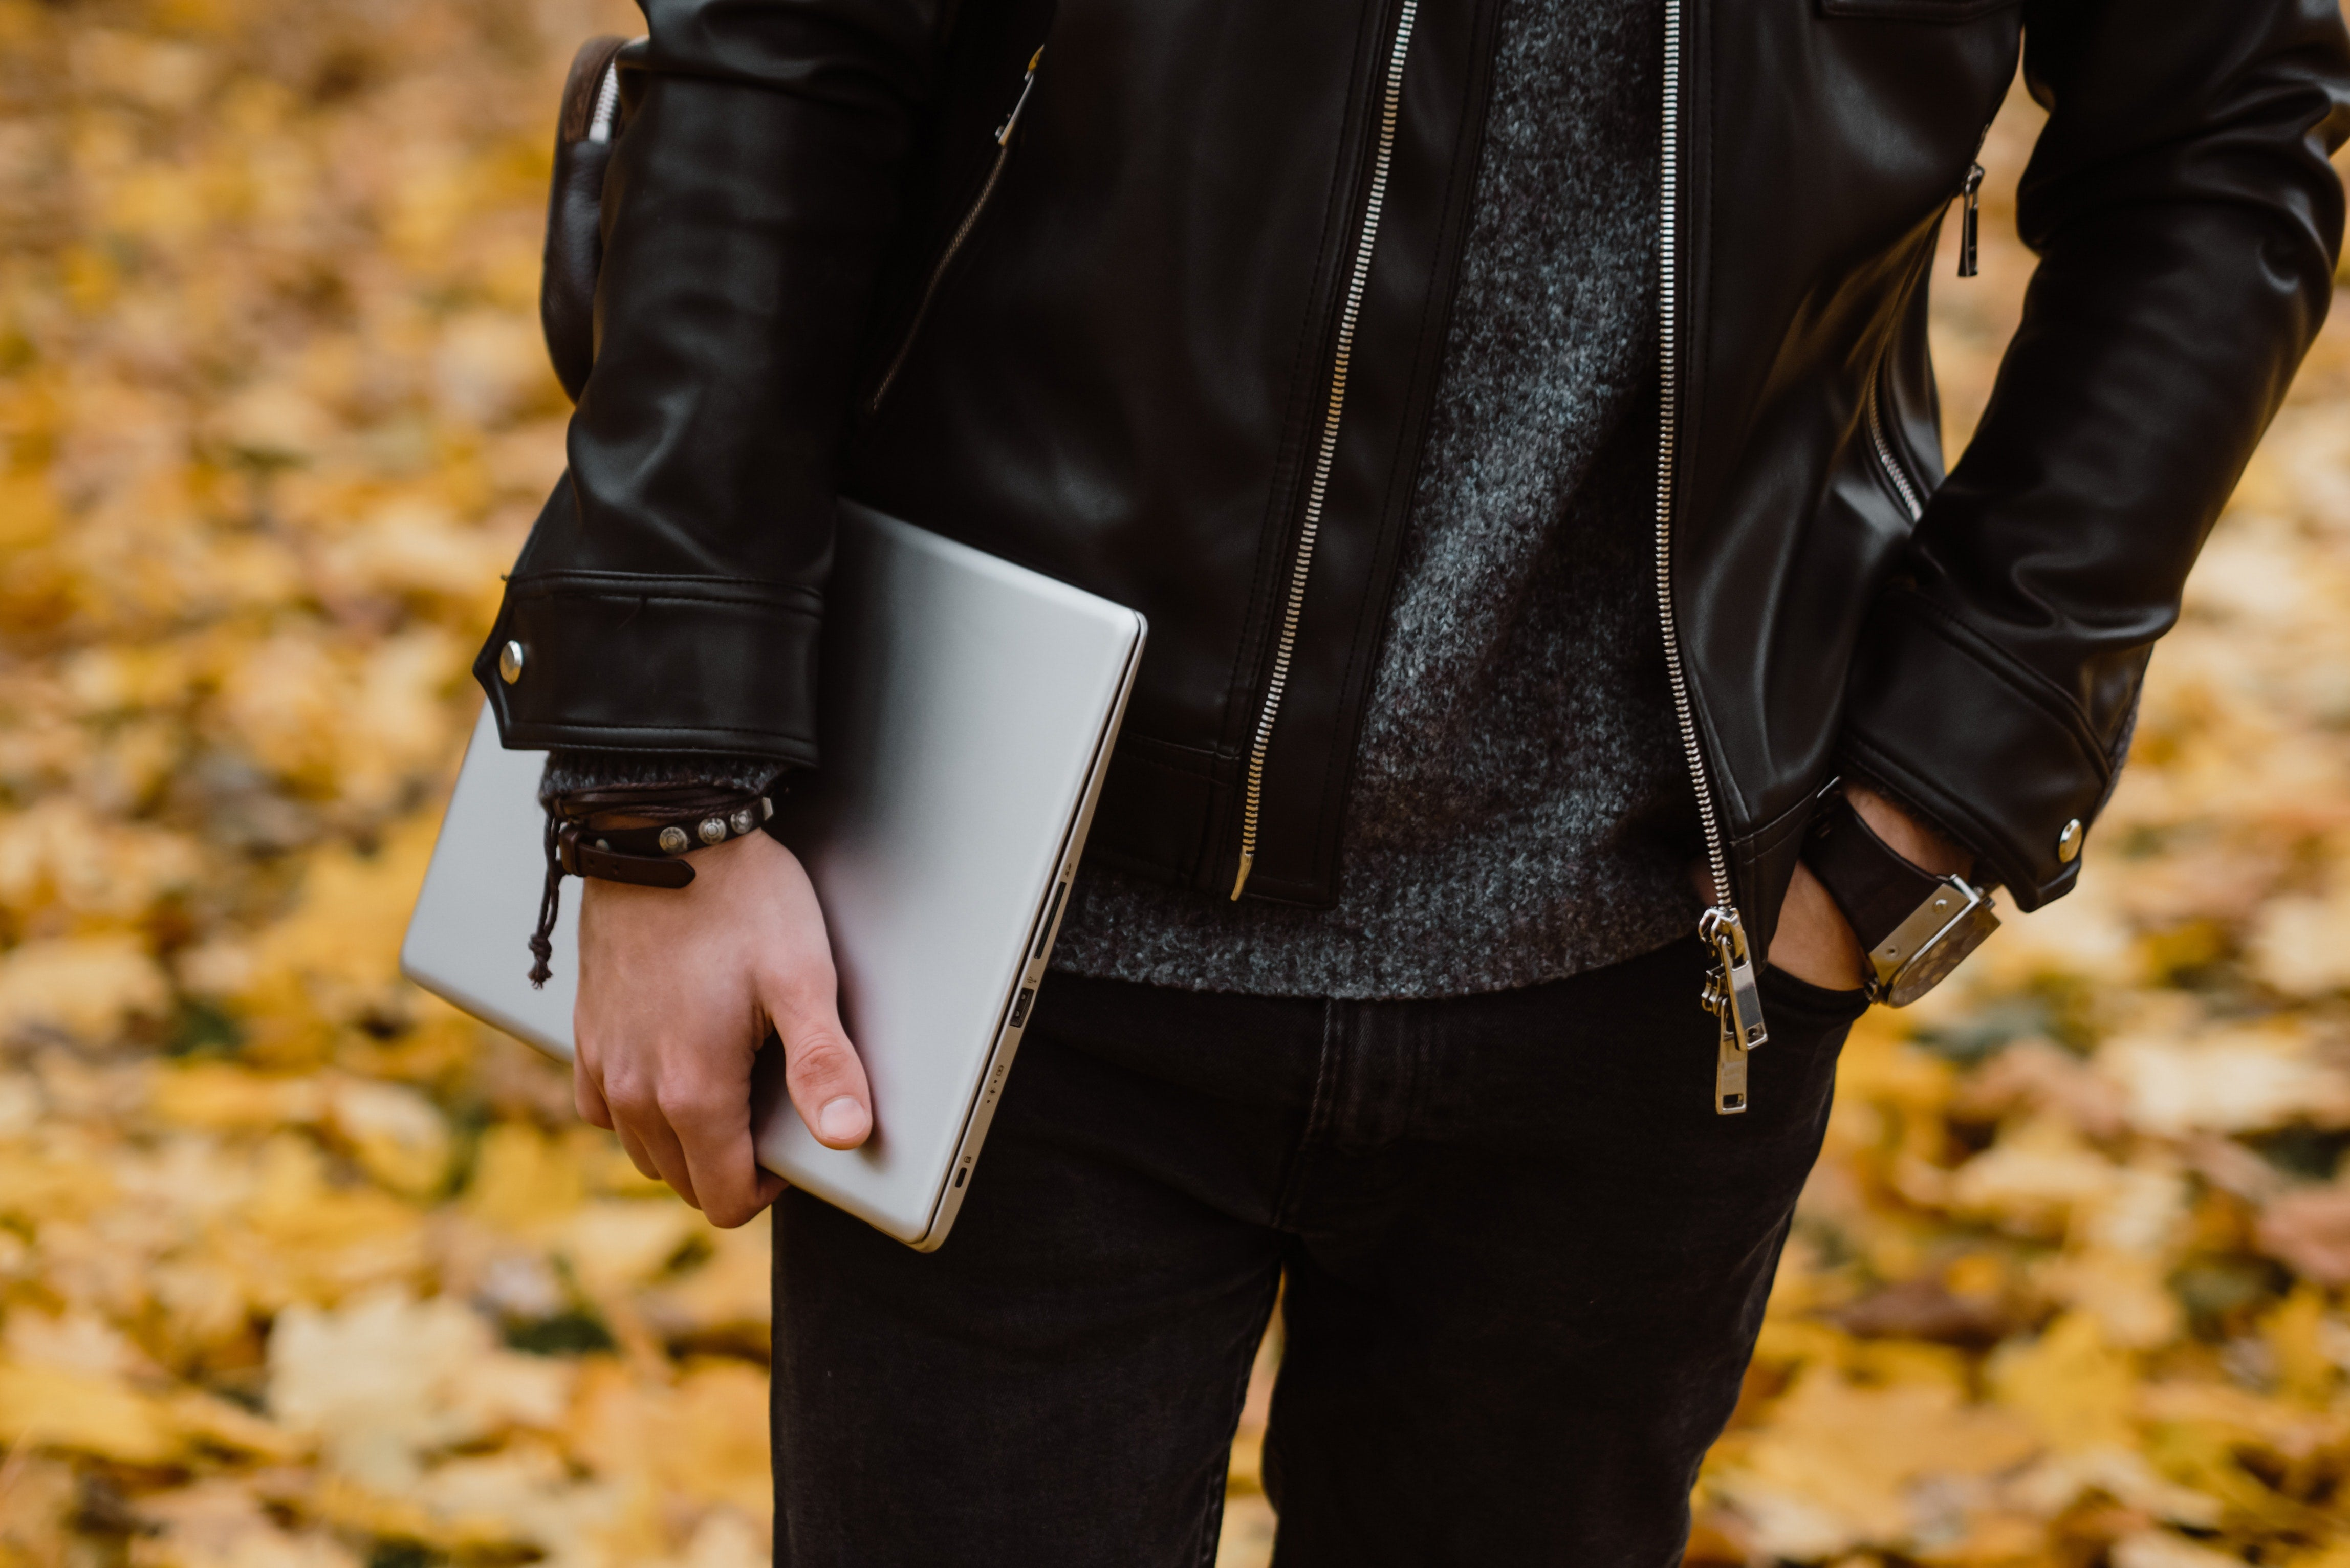 Young man holding laptop under arm outside on a fall day.